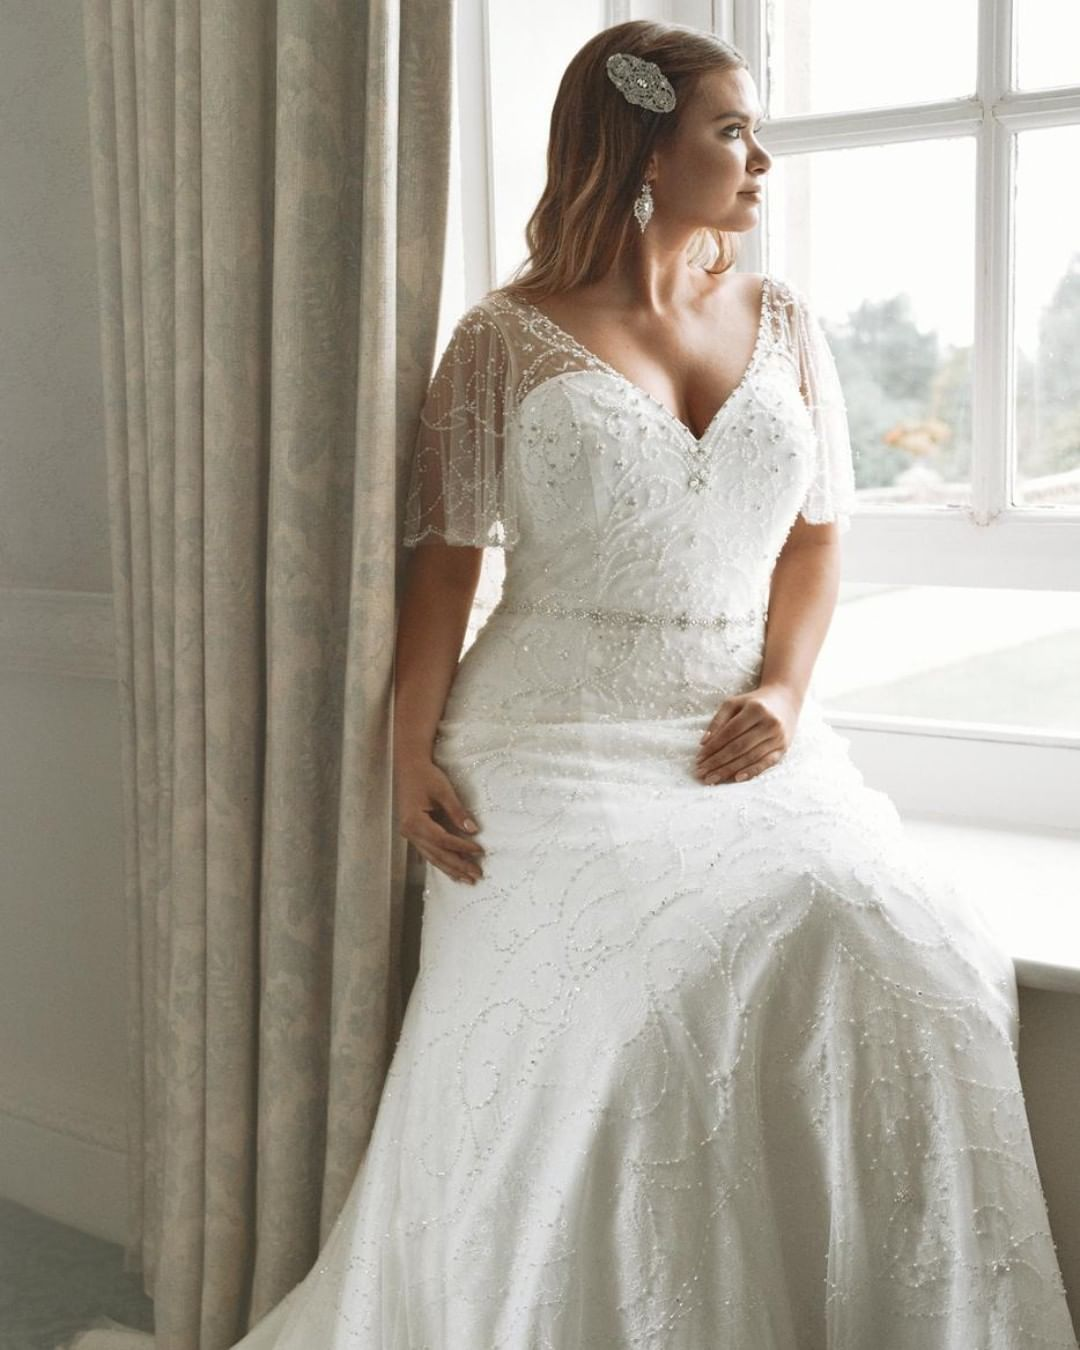 Confetti And Curves On Instagram Vintage Styling And A Truly Elegant Silhouette Give This Beautiful Curvy Wedding Plus Wedding Dresses Wedding Dresses Simple [ 1350 x 1080 Pixel ]